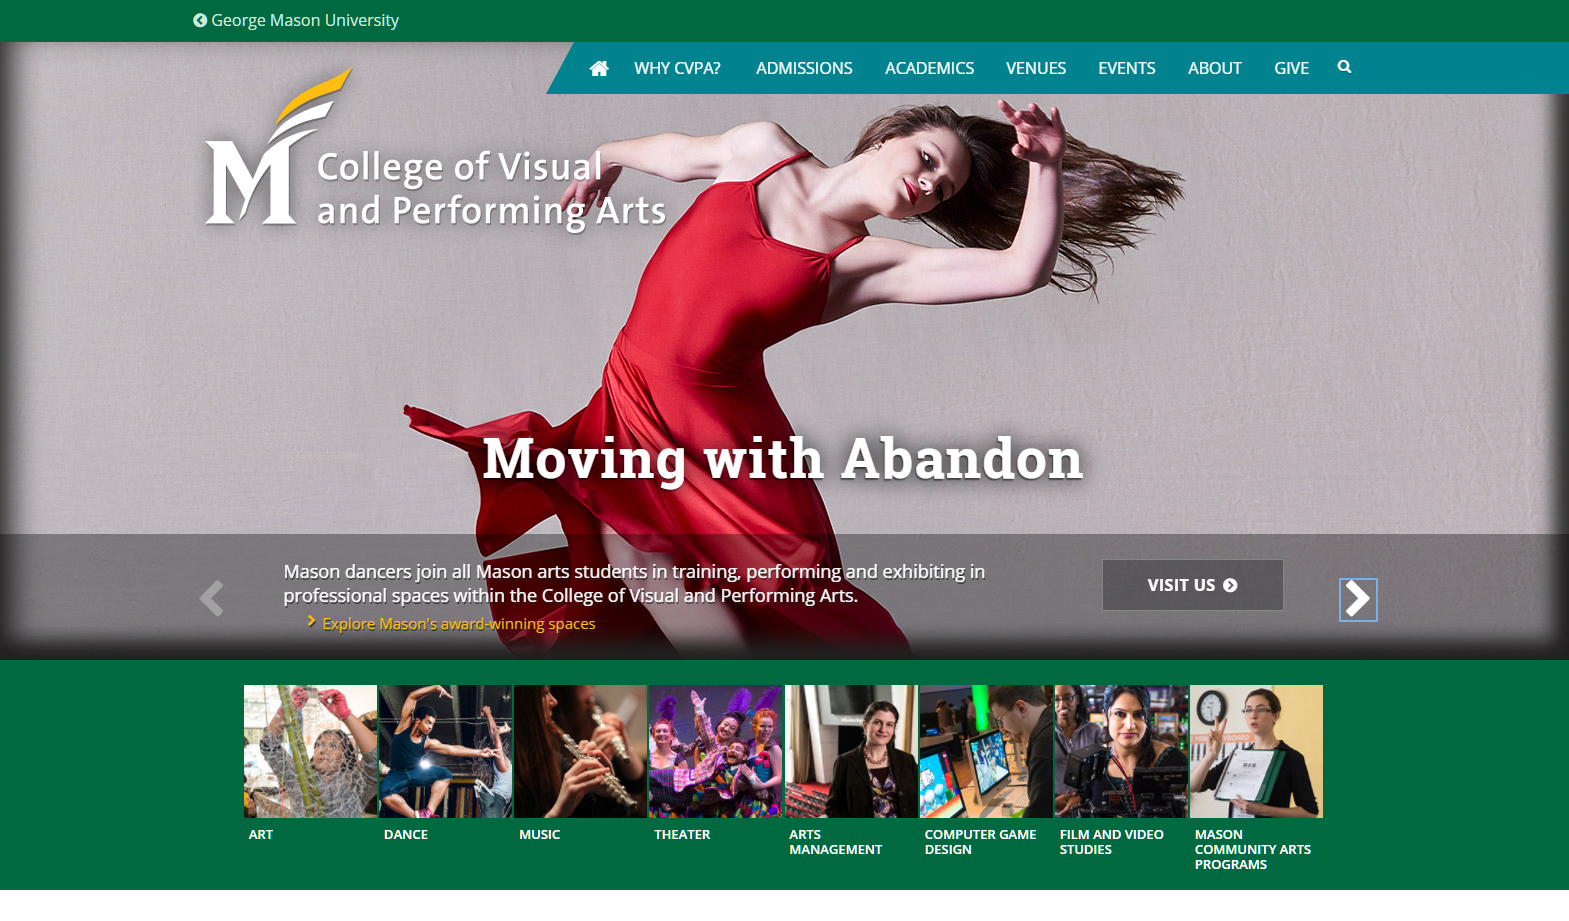 George Mason University CVPA website